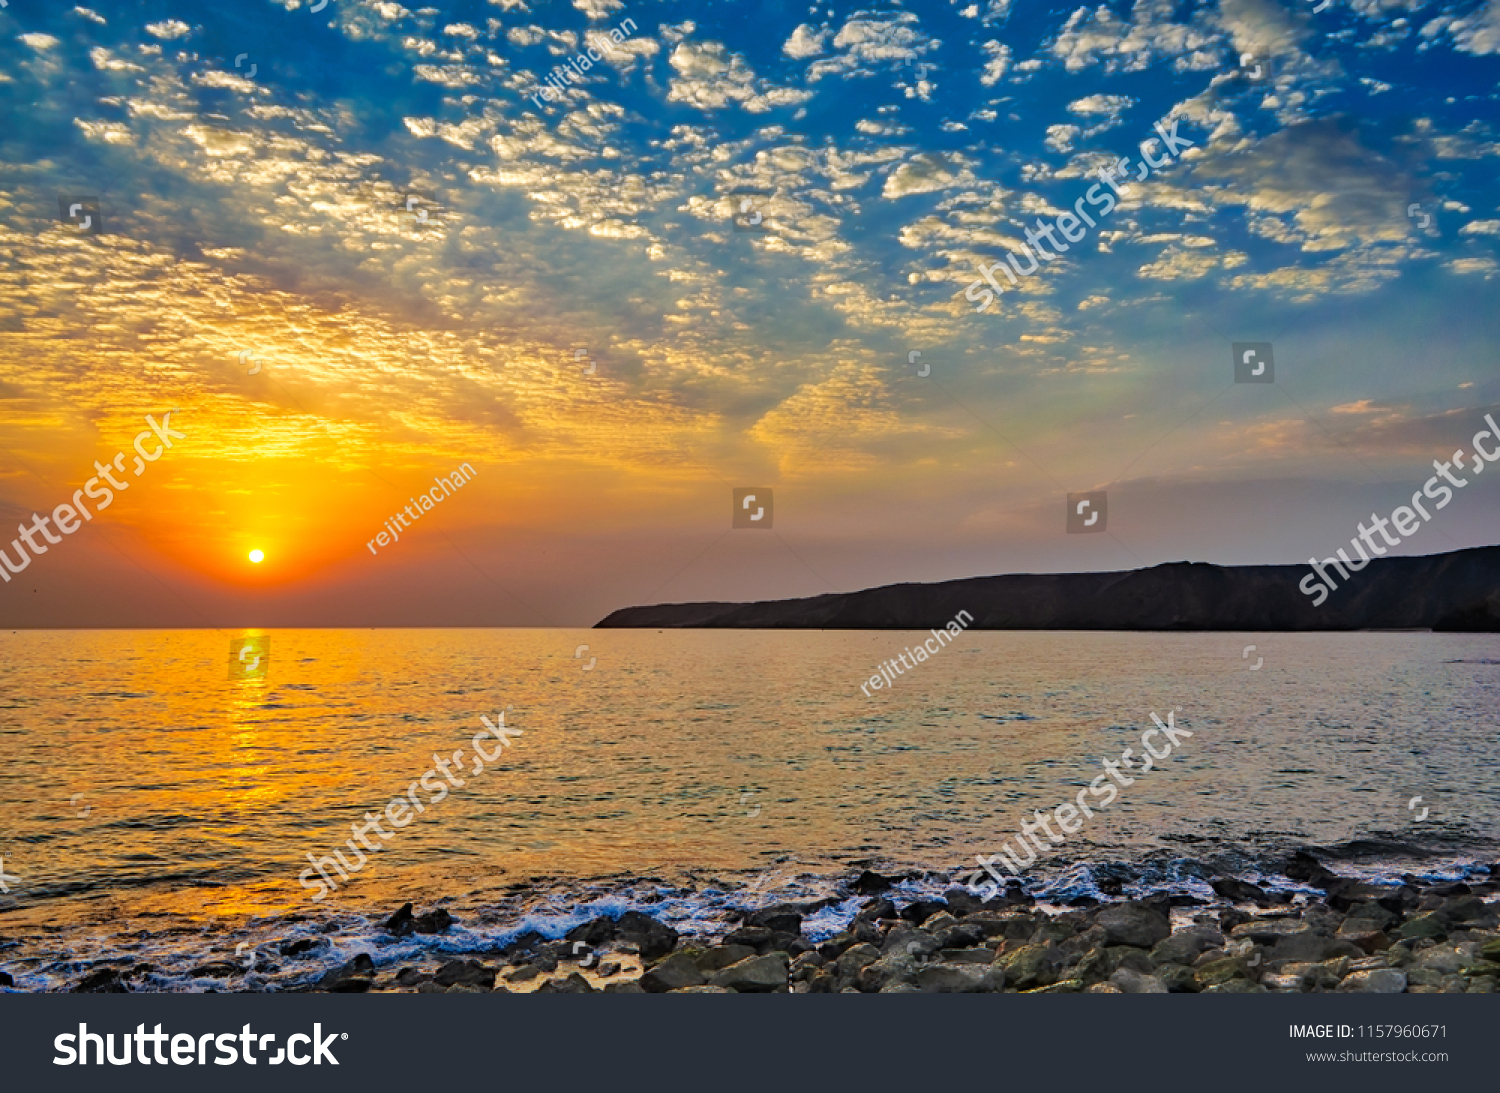 Beautiful Sunrise on the beach. Full view of the ocean, the waves, mountains and the sky.